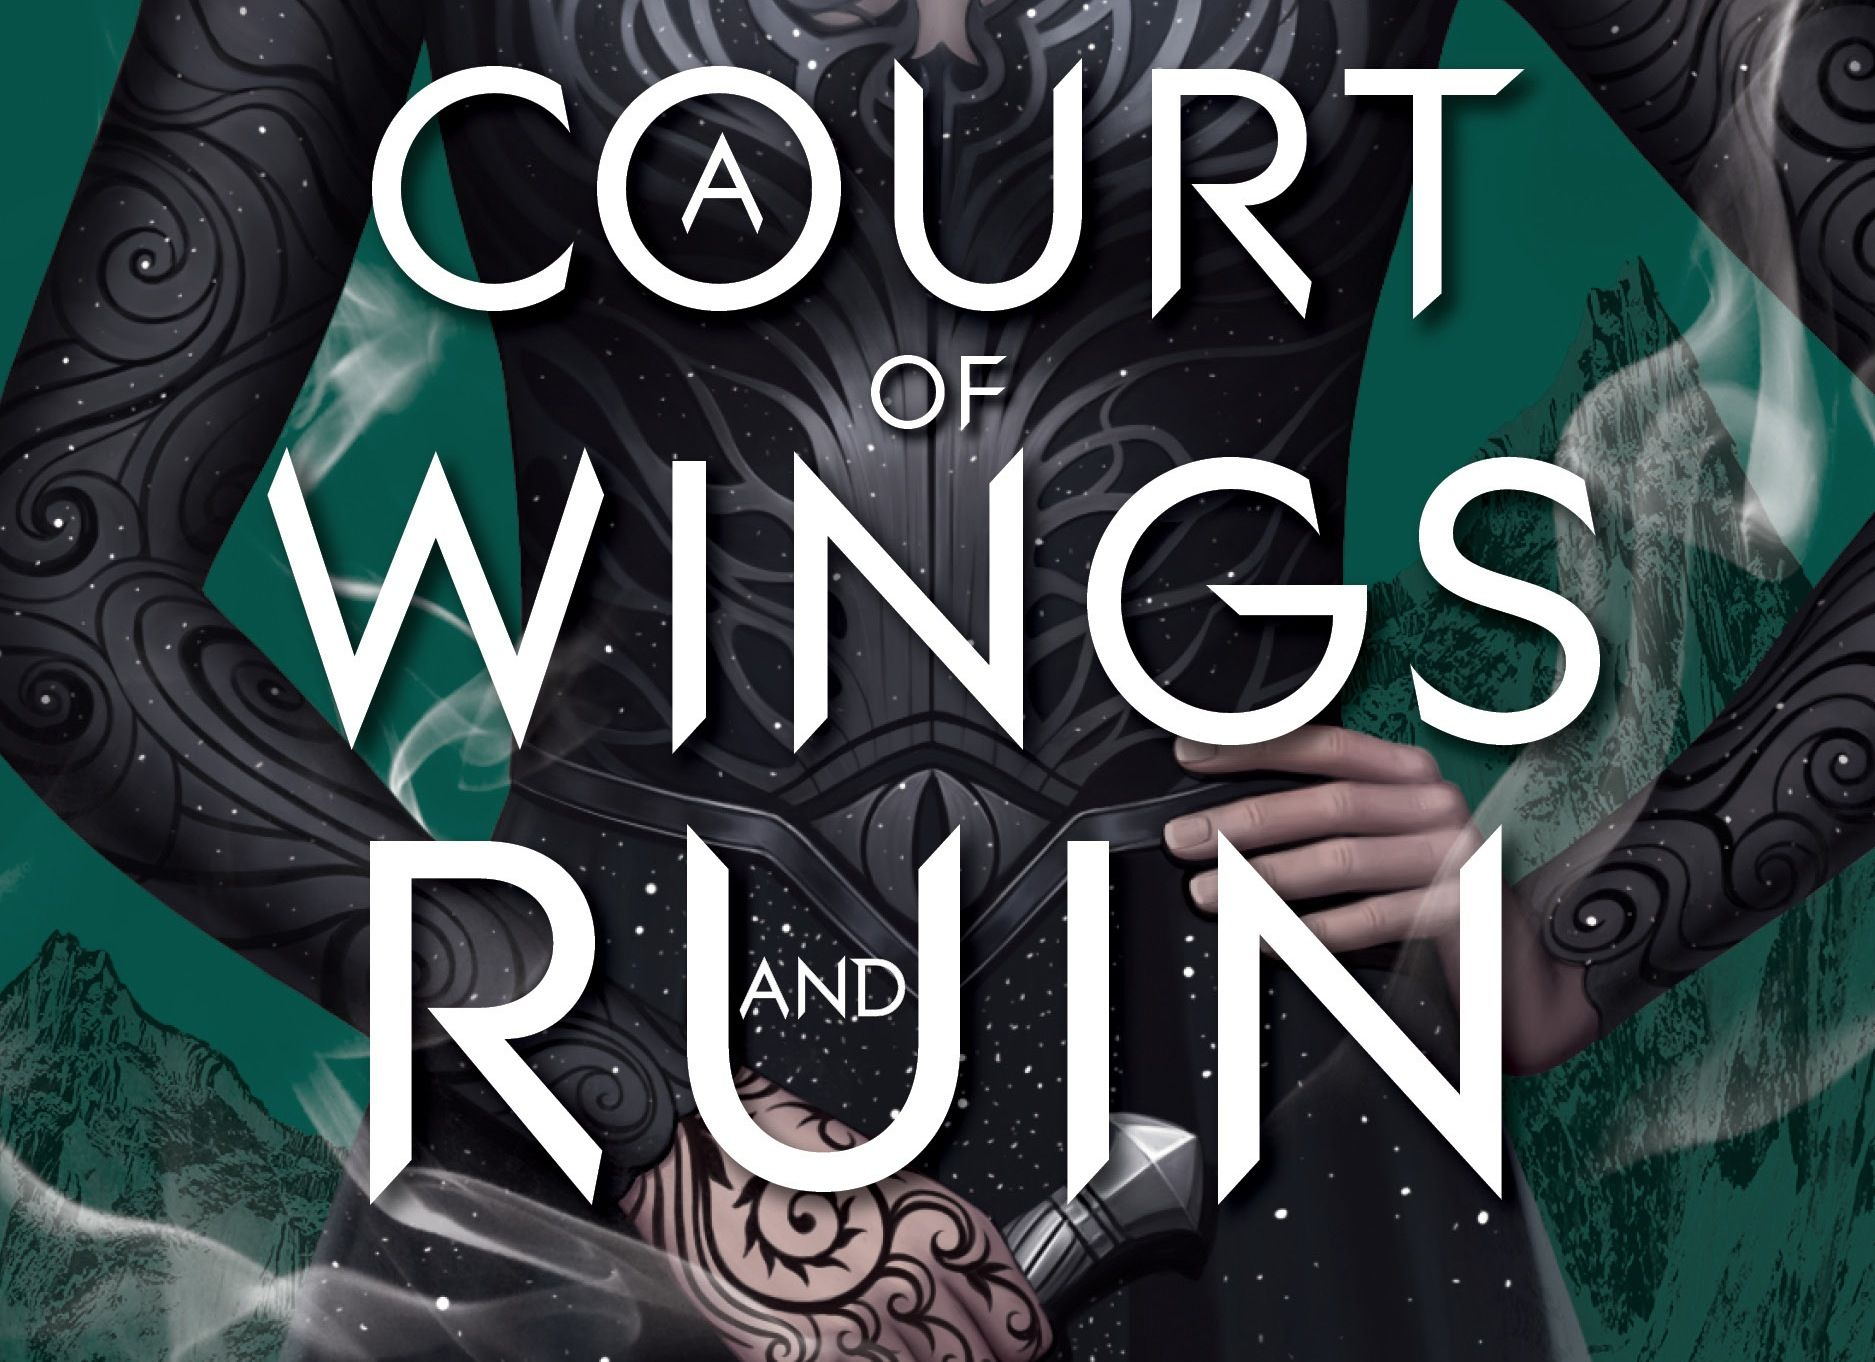 We Review A Court Of Wings And Ruin The Highly Anticipated Third